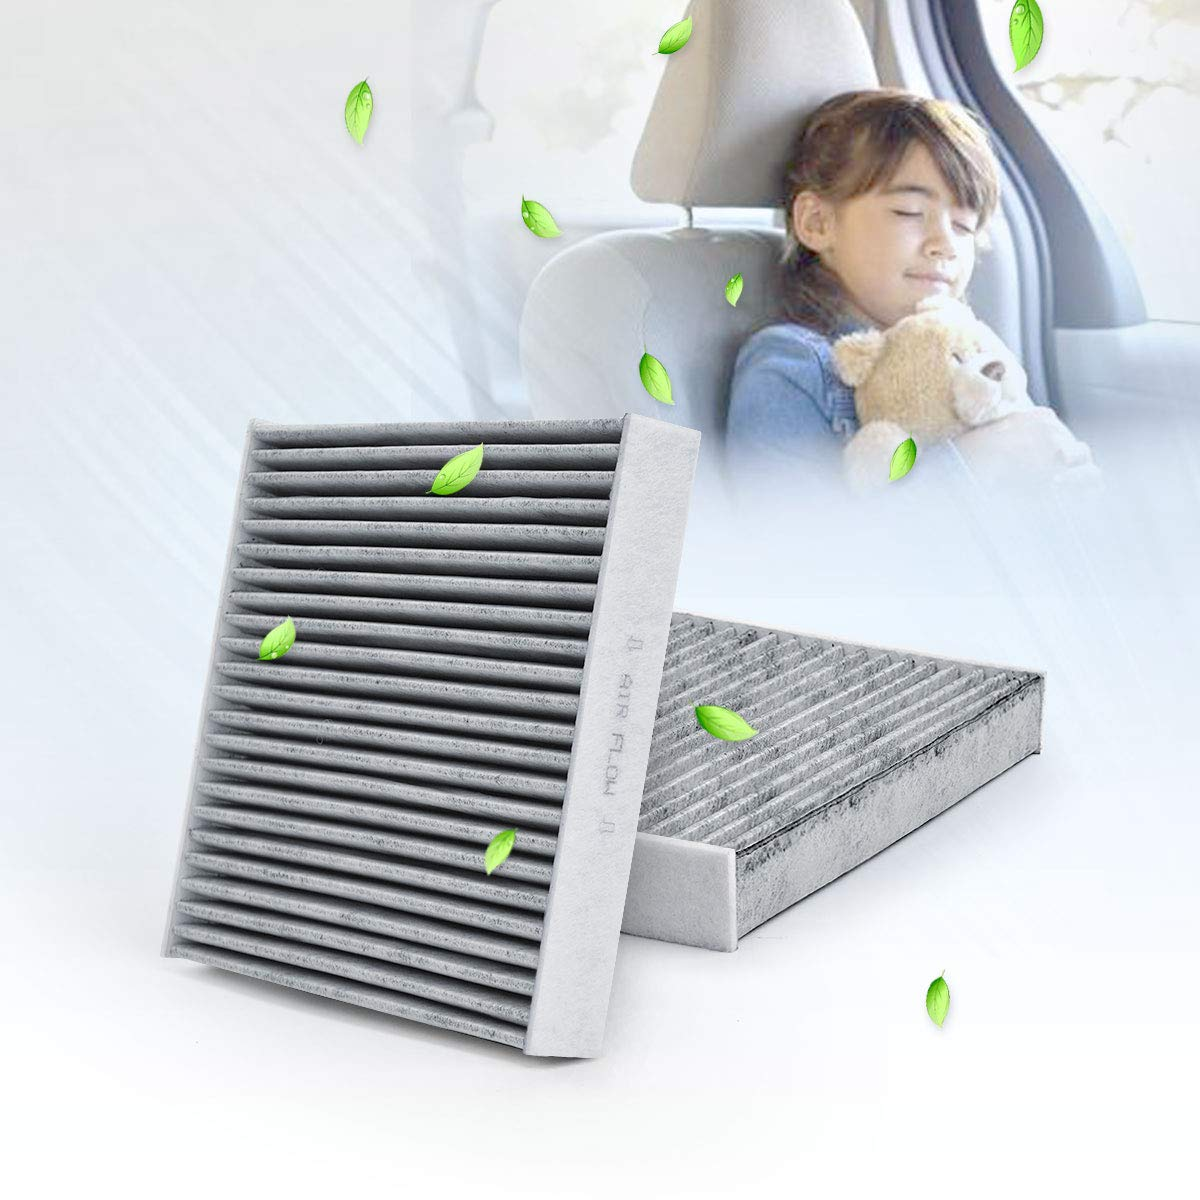 B727A79925 999M1-VS251 HQRP Charcoal Cabin Air Filter for B7200-5M000